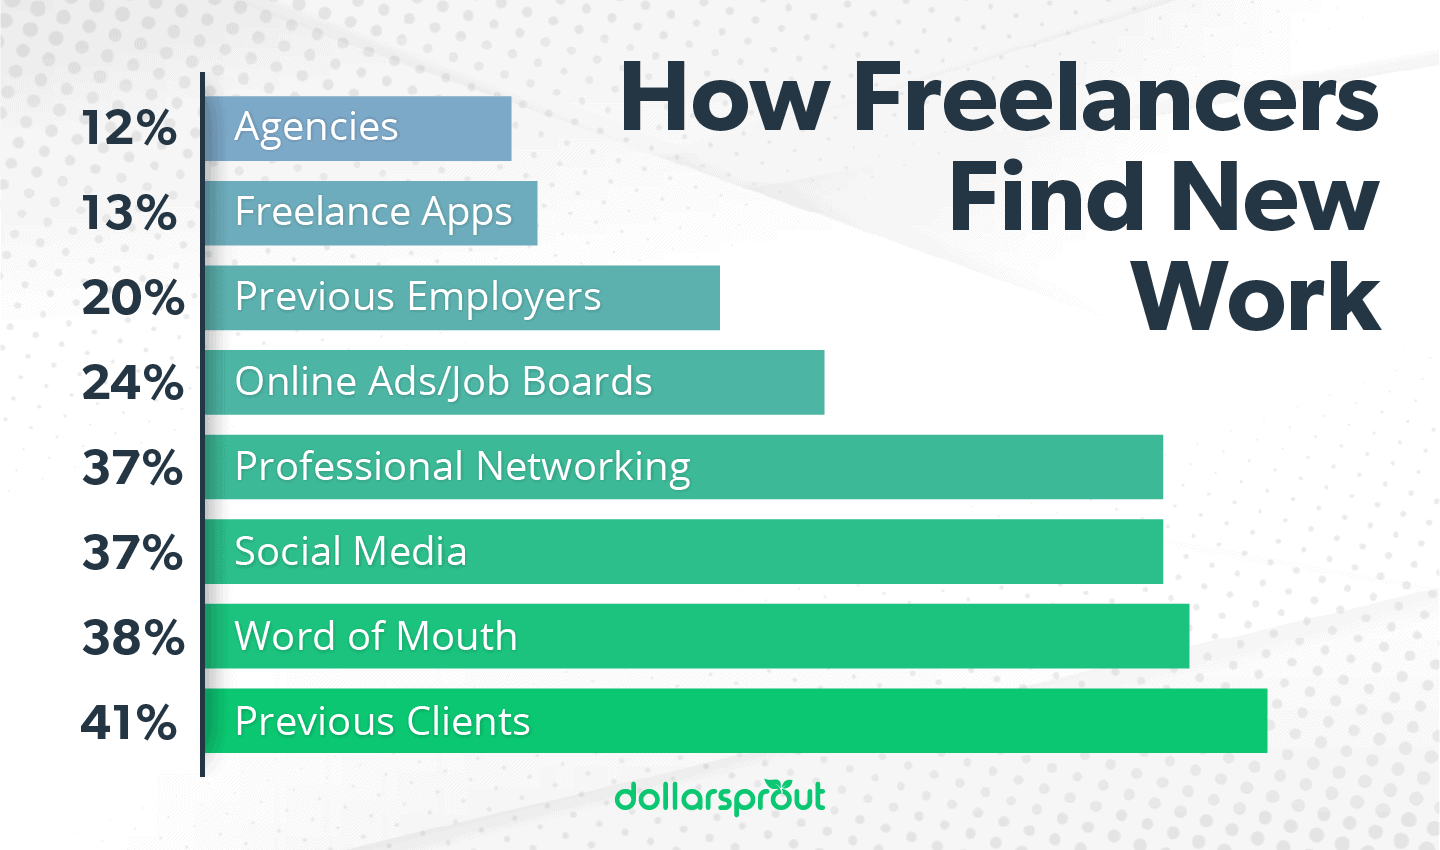 How Freelancers Find New Work